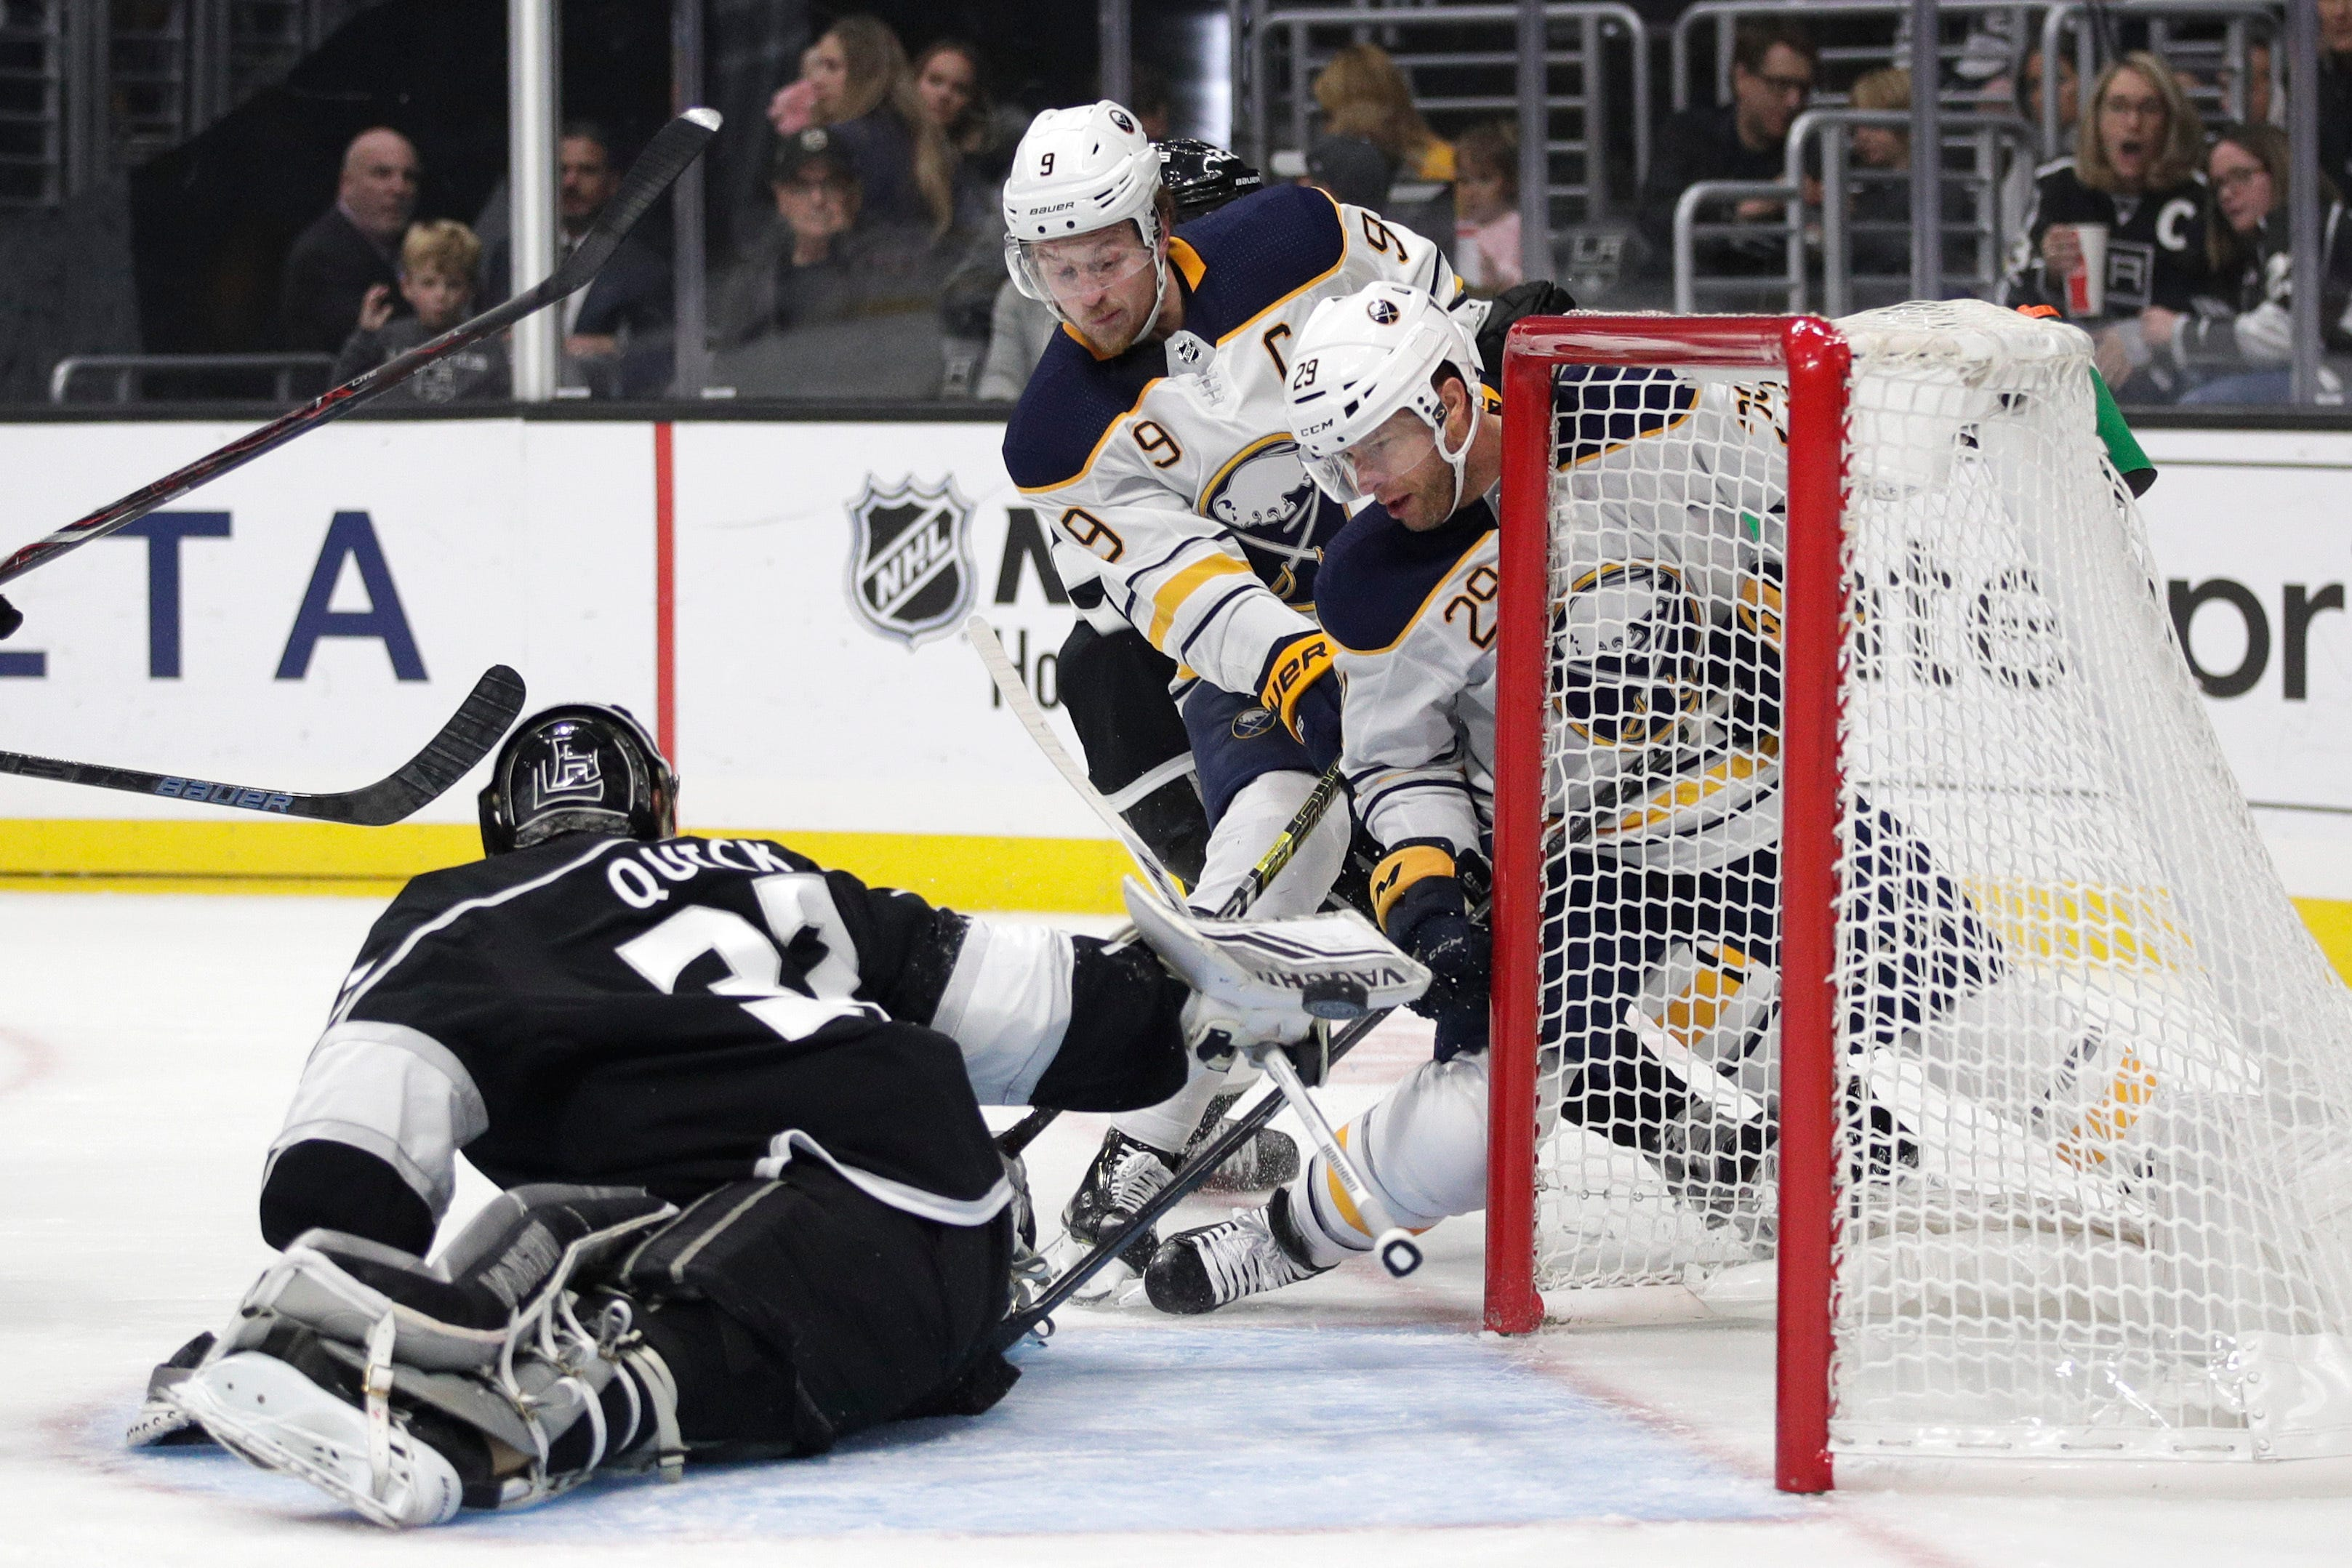 Skinner scores 3 to lead Sabres to 5-1 win over Kings